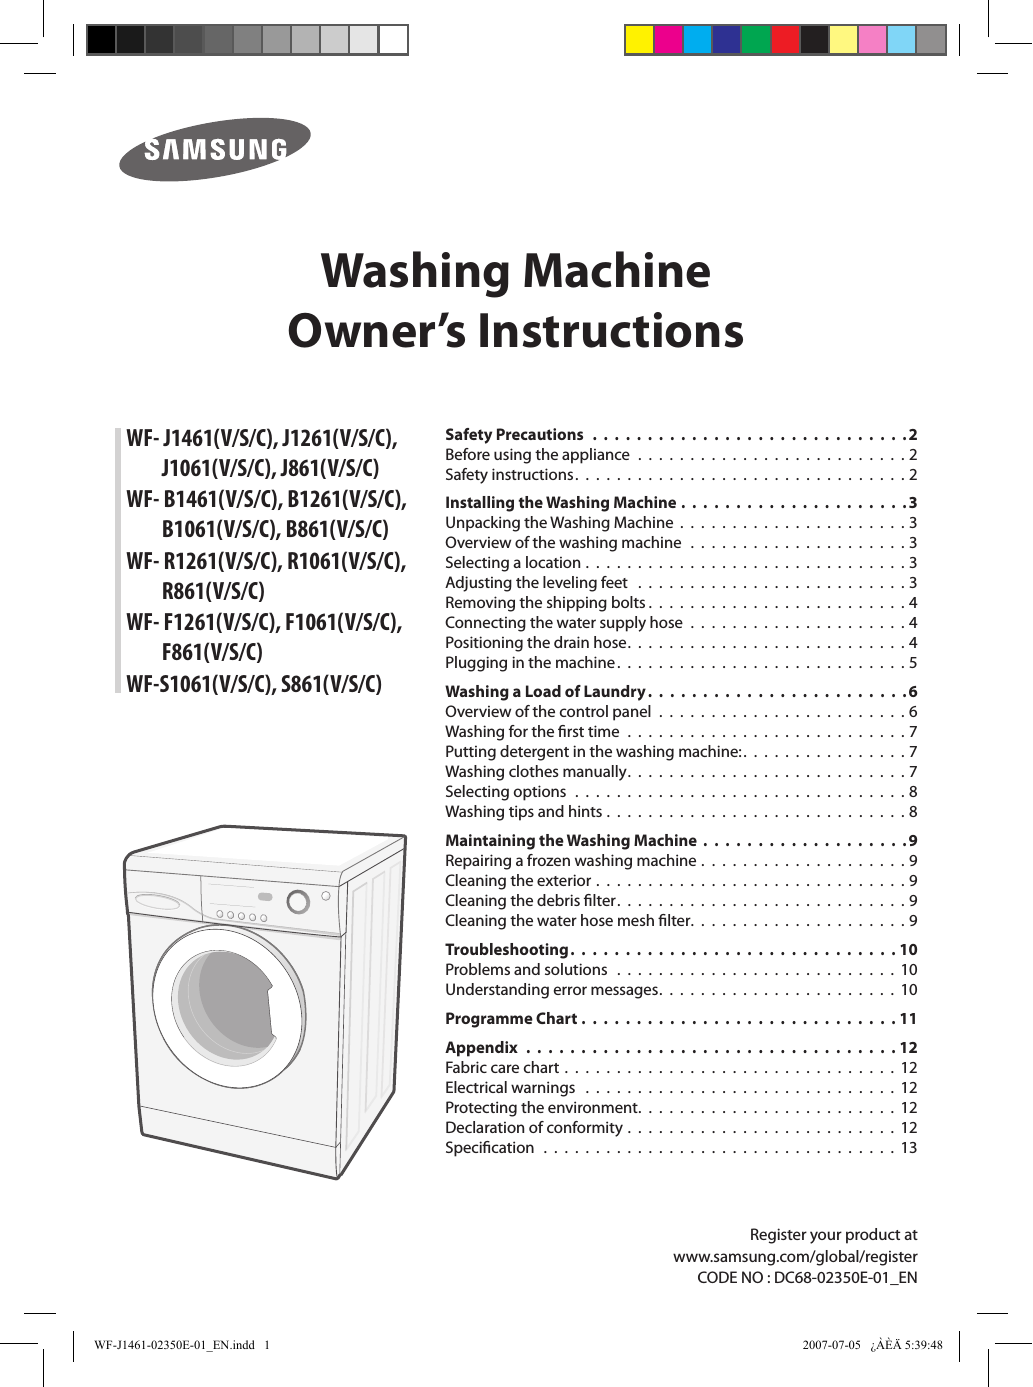 Samsung washing machine manual | ac power plugs and sockets.